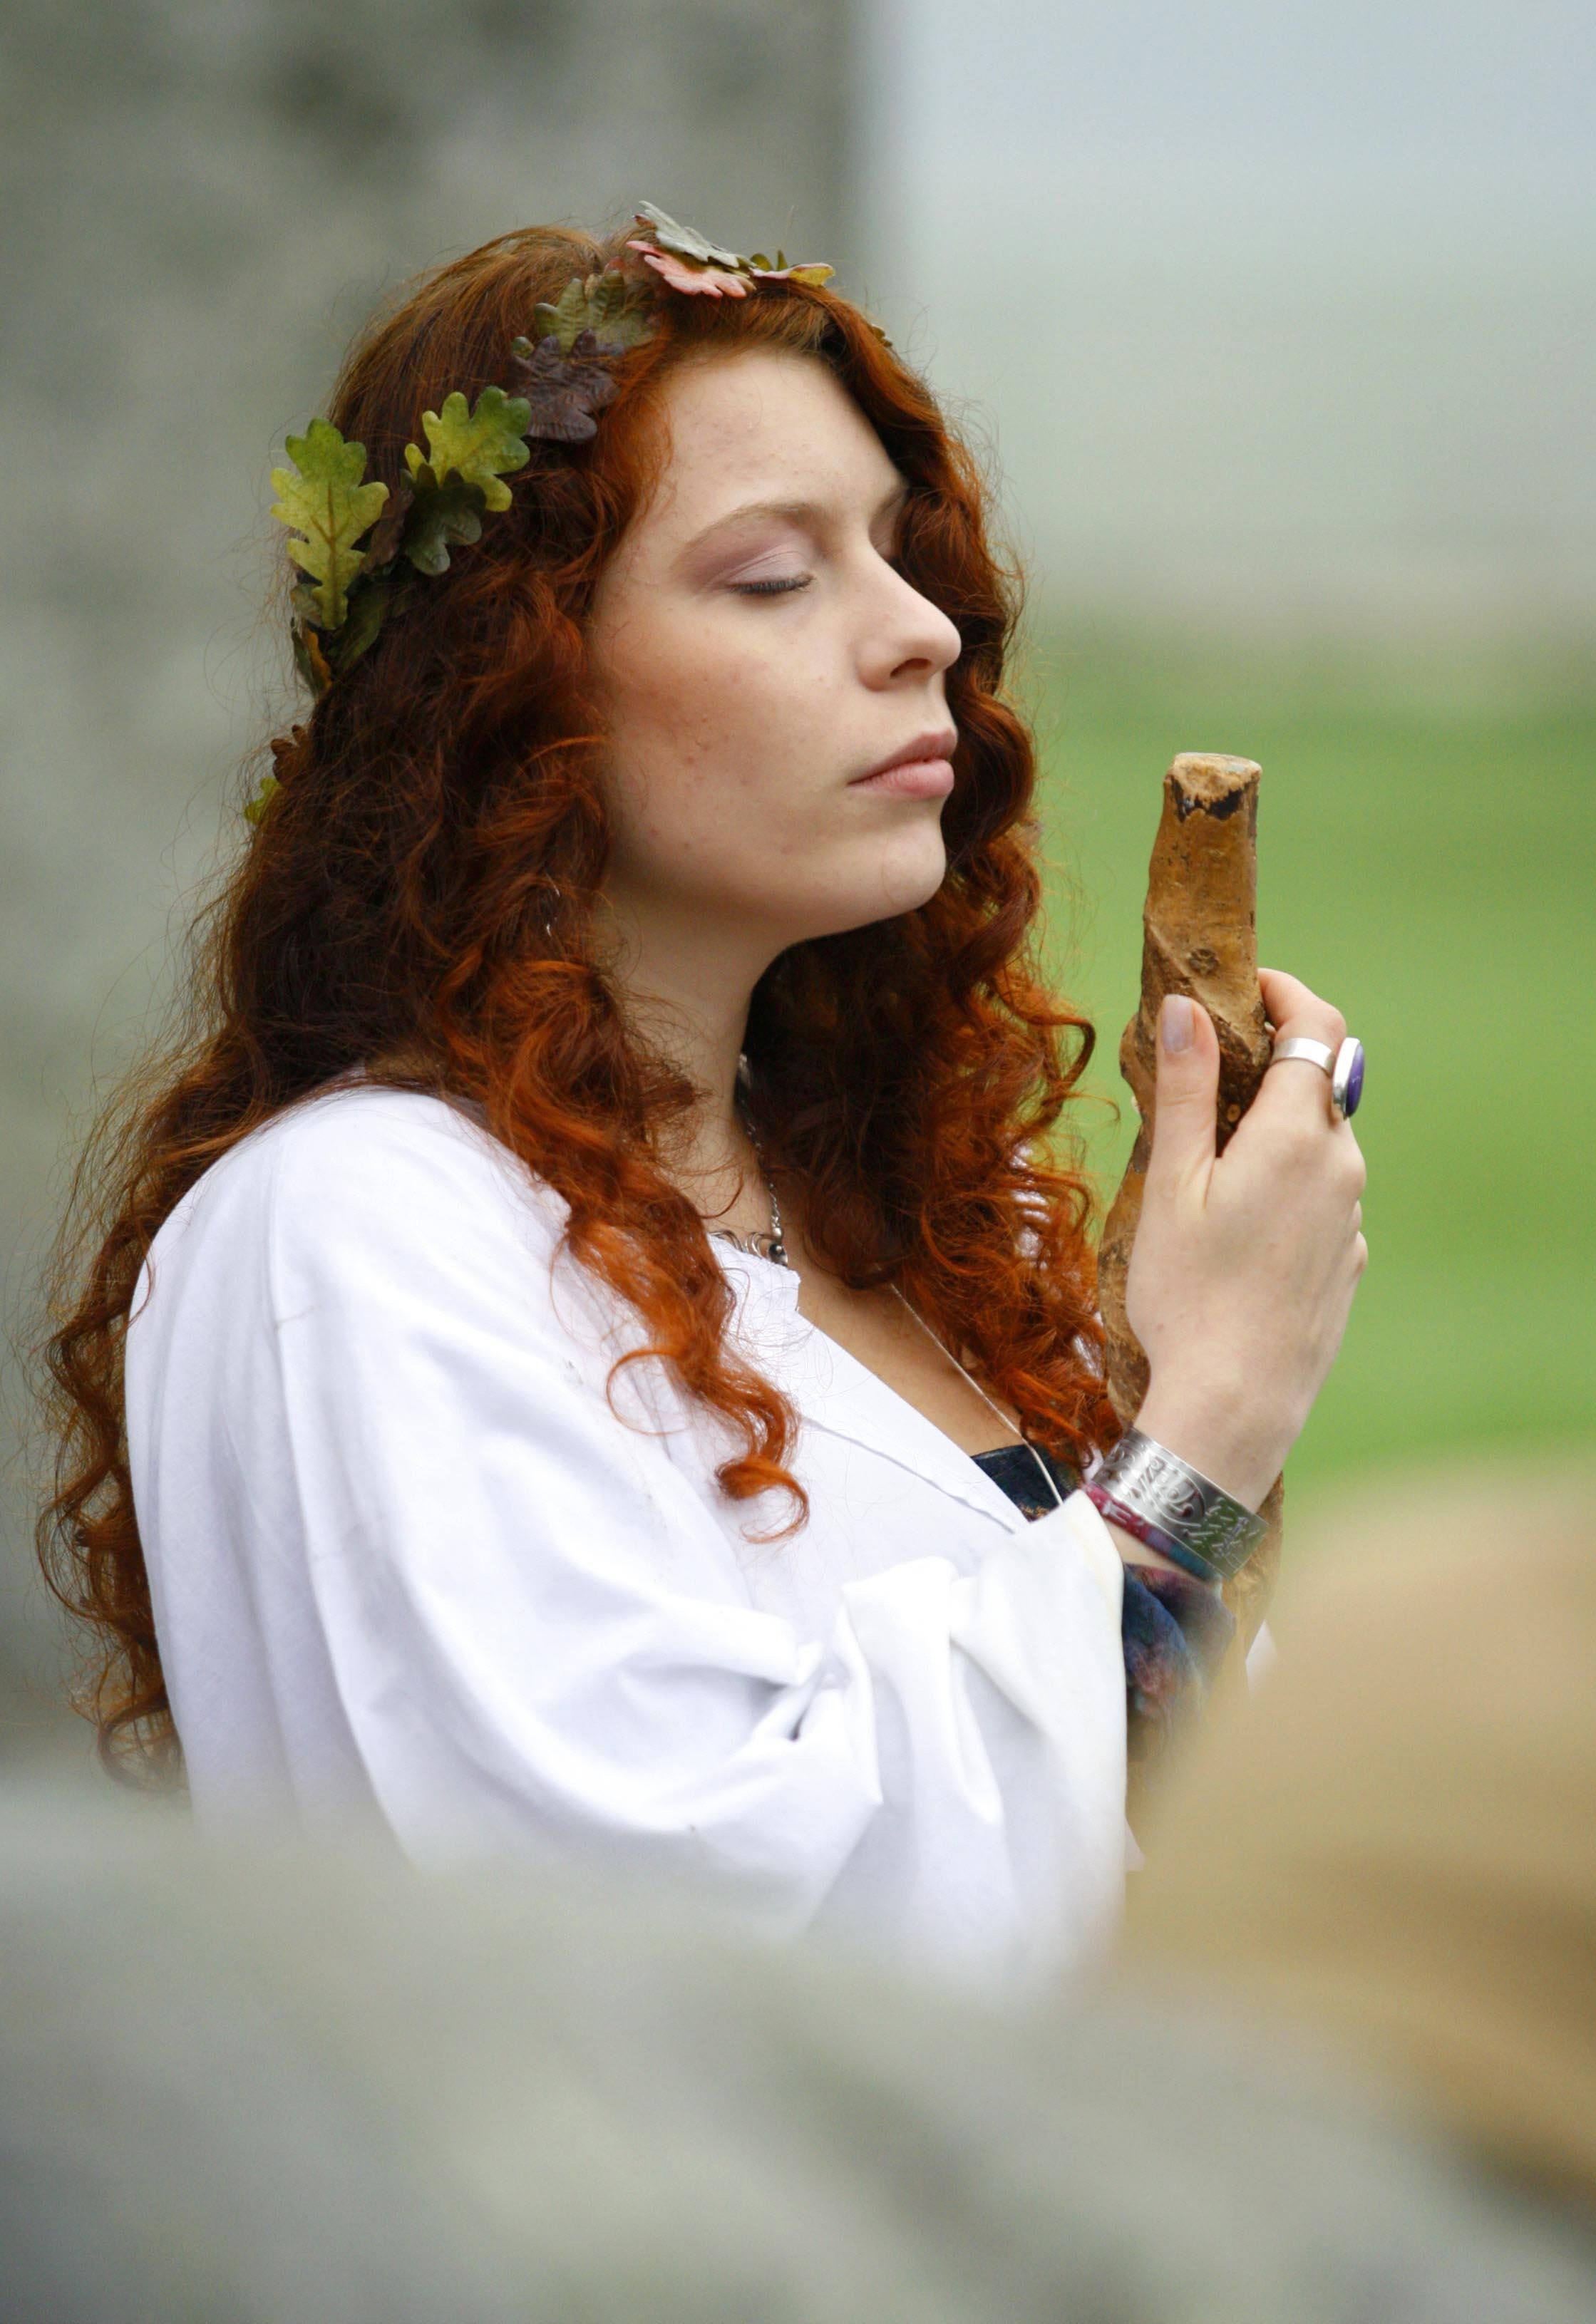 A druids performs a Samhain or pagan Halloween style blessing ceremony at Stonehenge in Wiltshire.